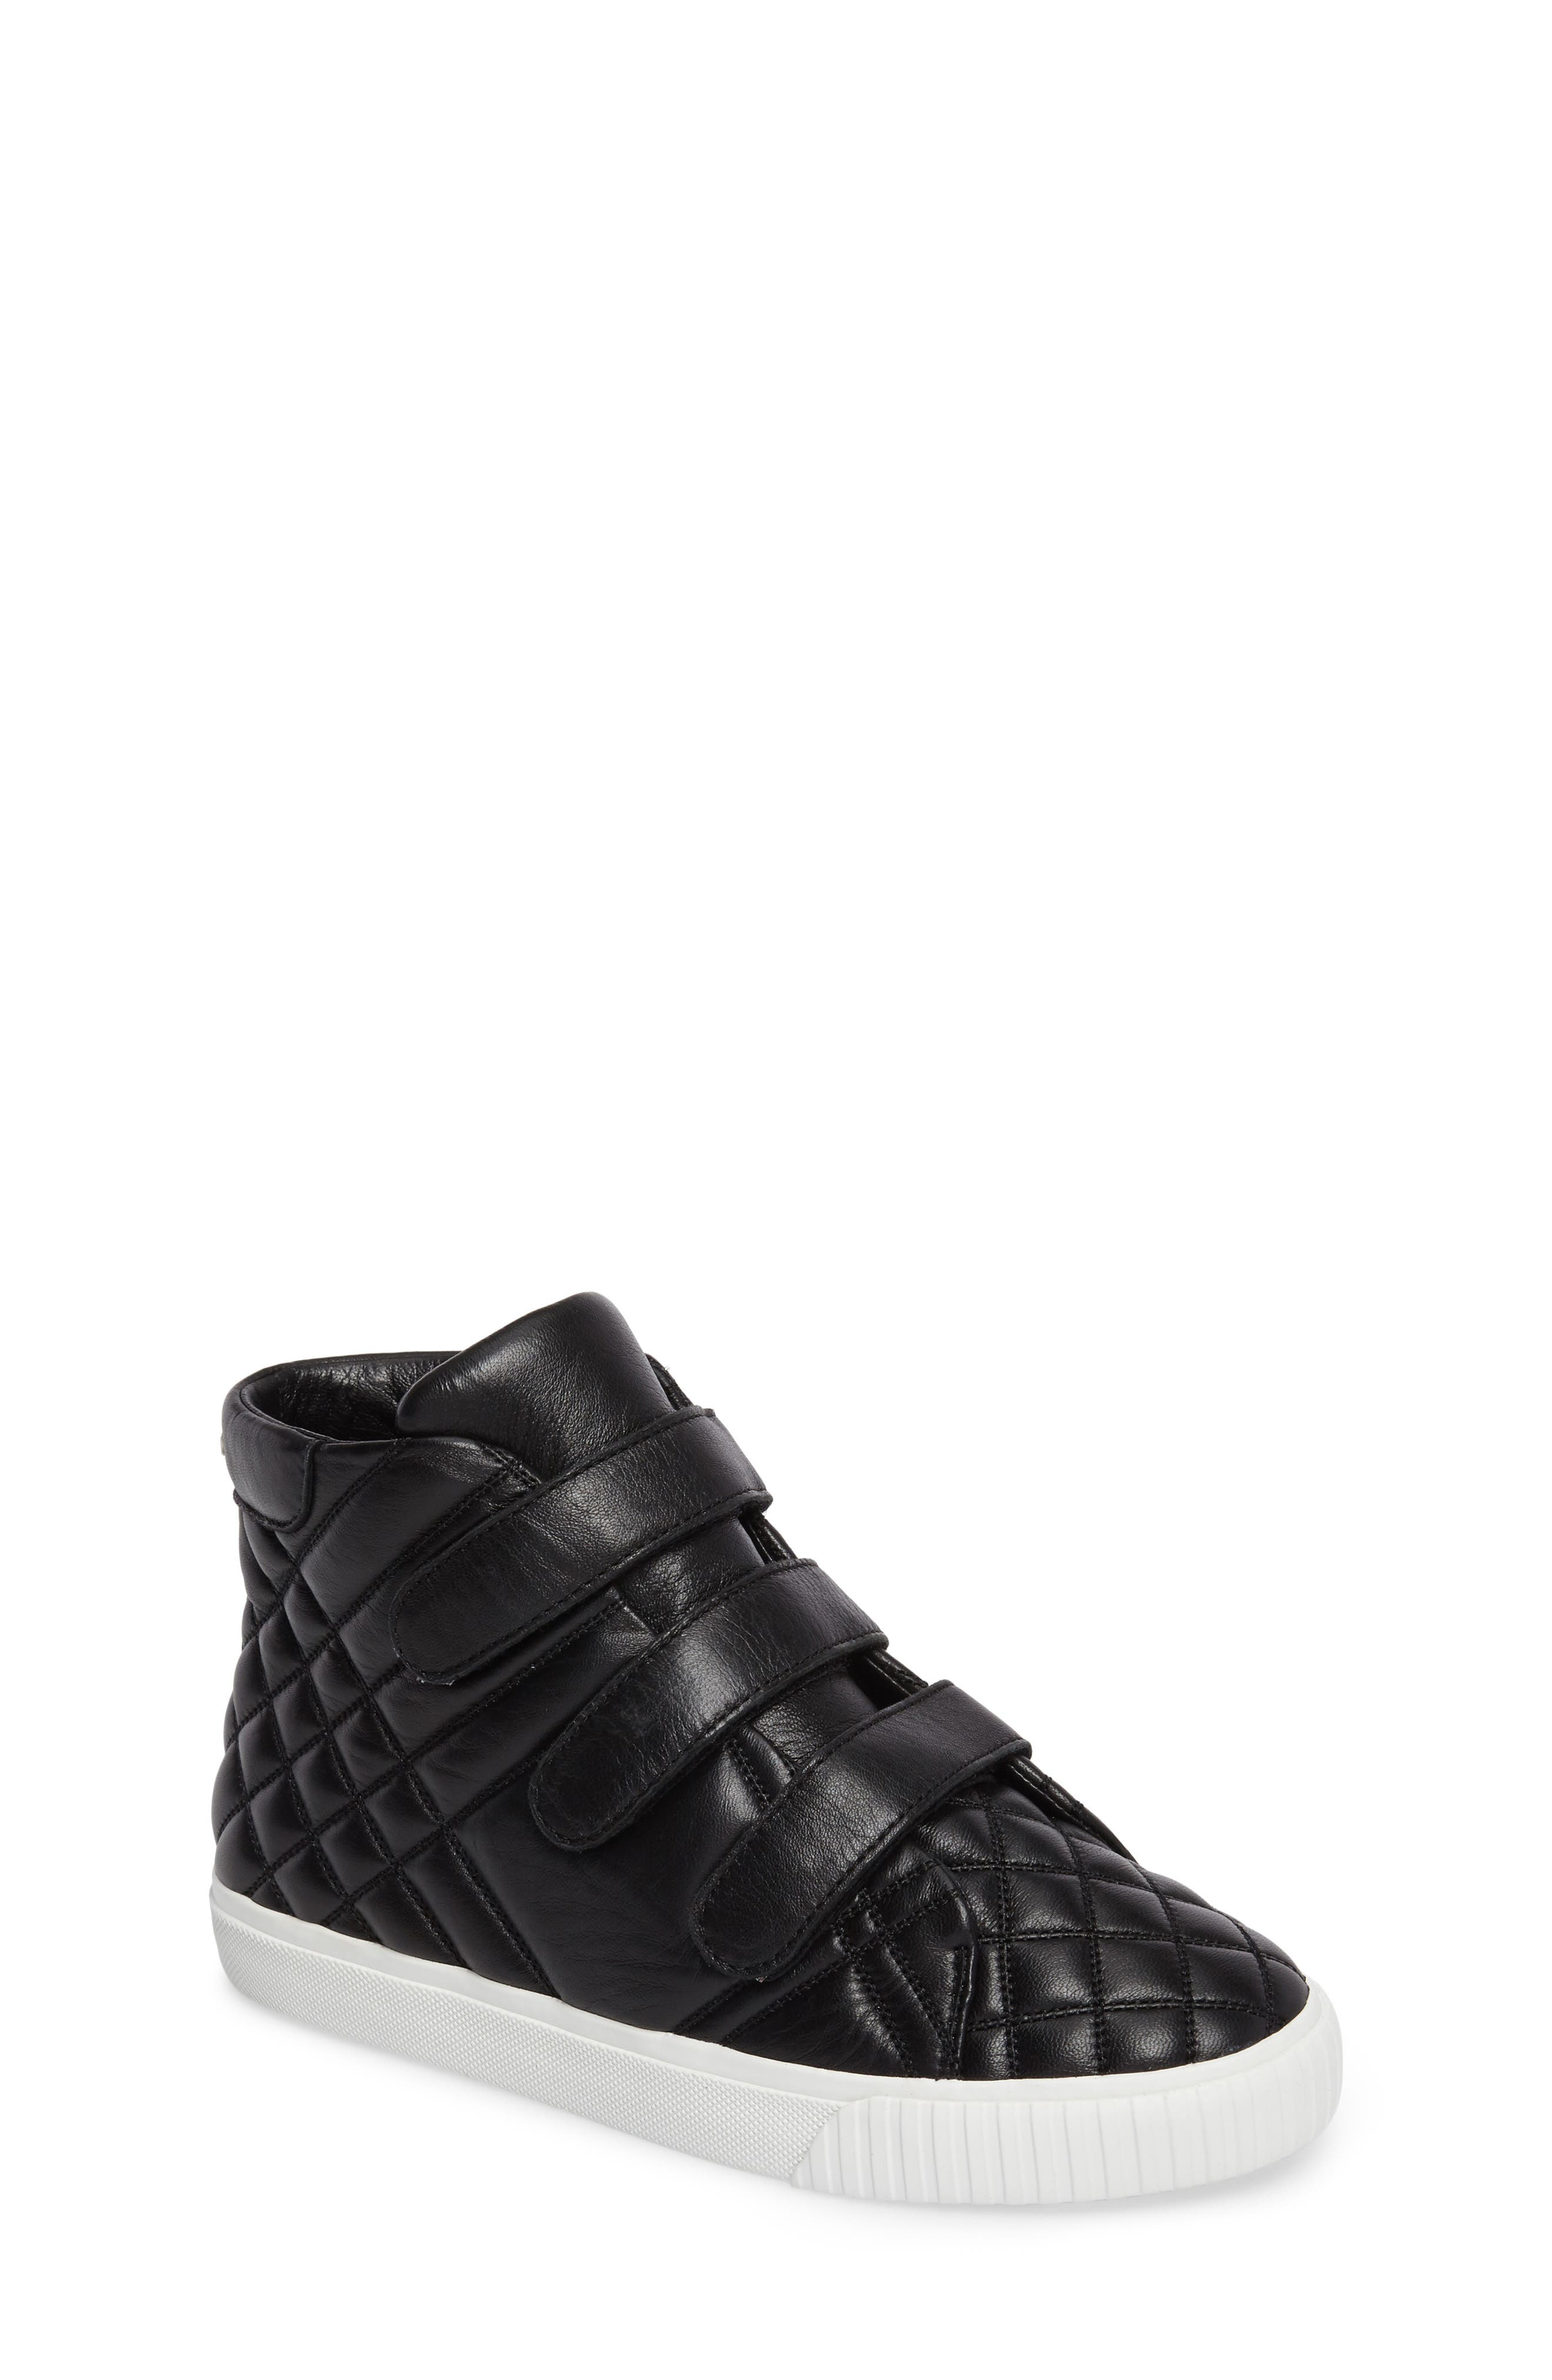 Sturrock Quilted High Top Sneaker,                             Main thumbnail 1, color,